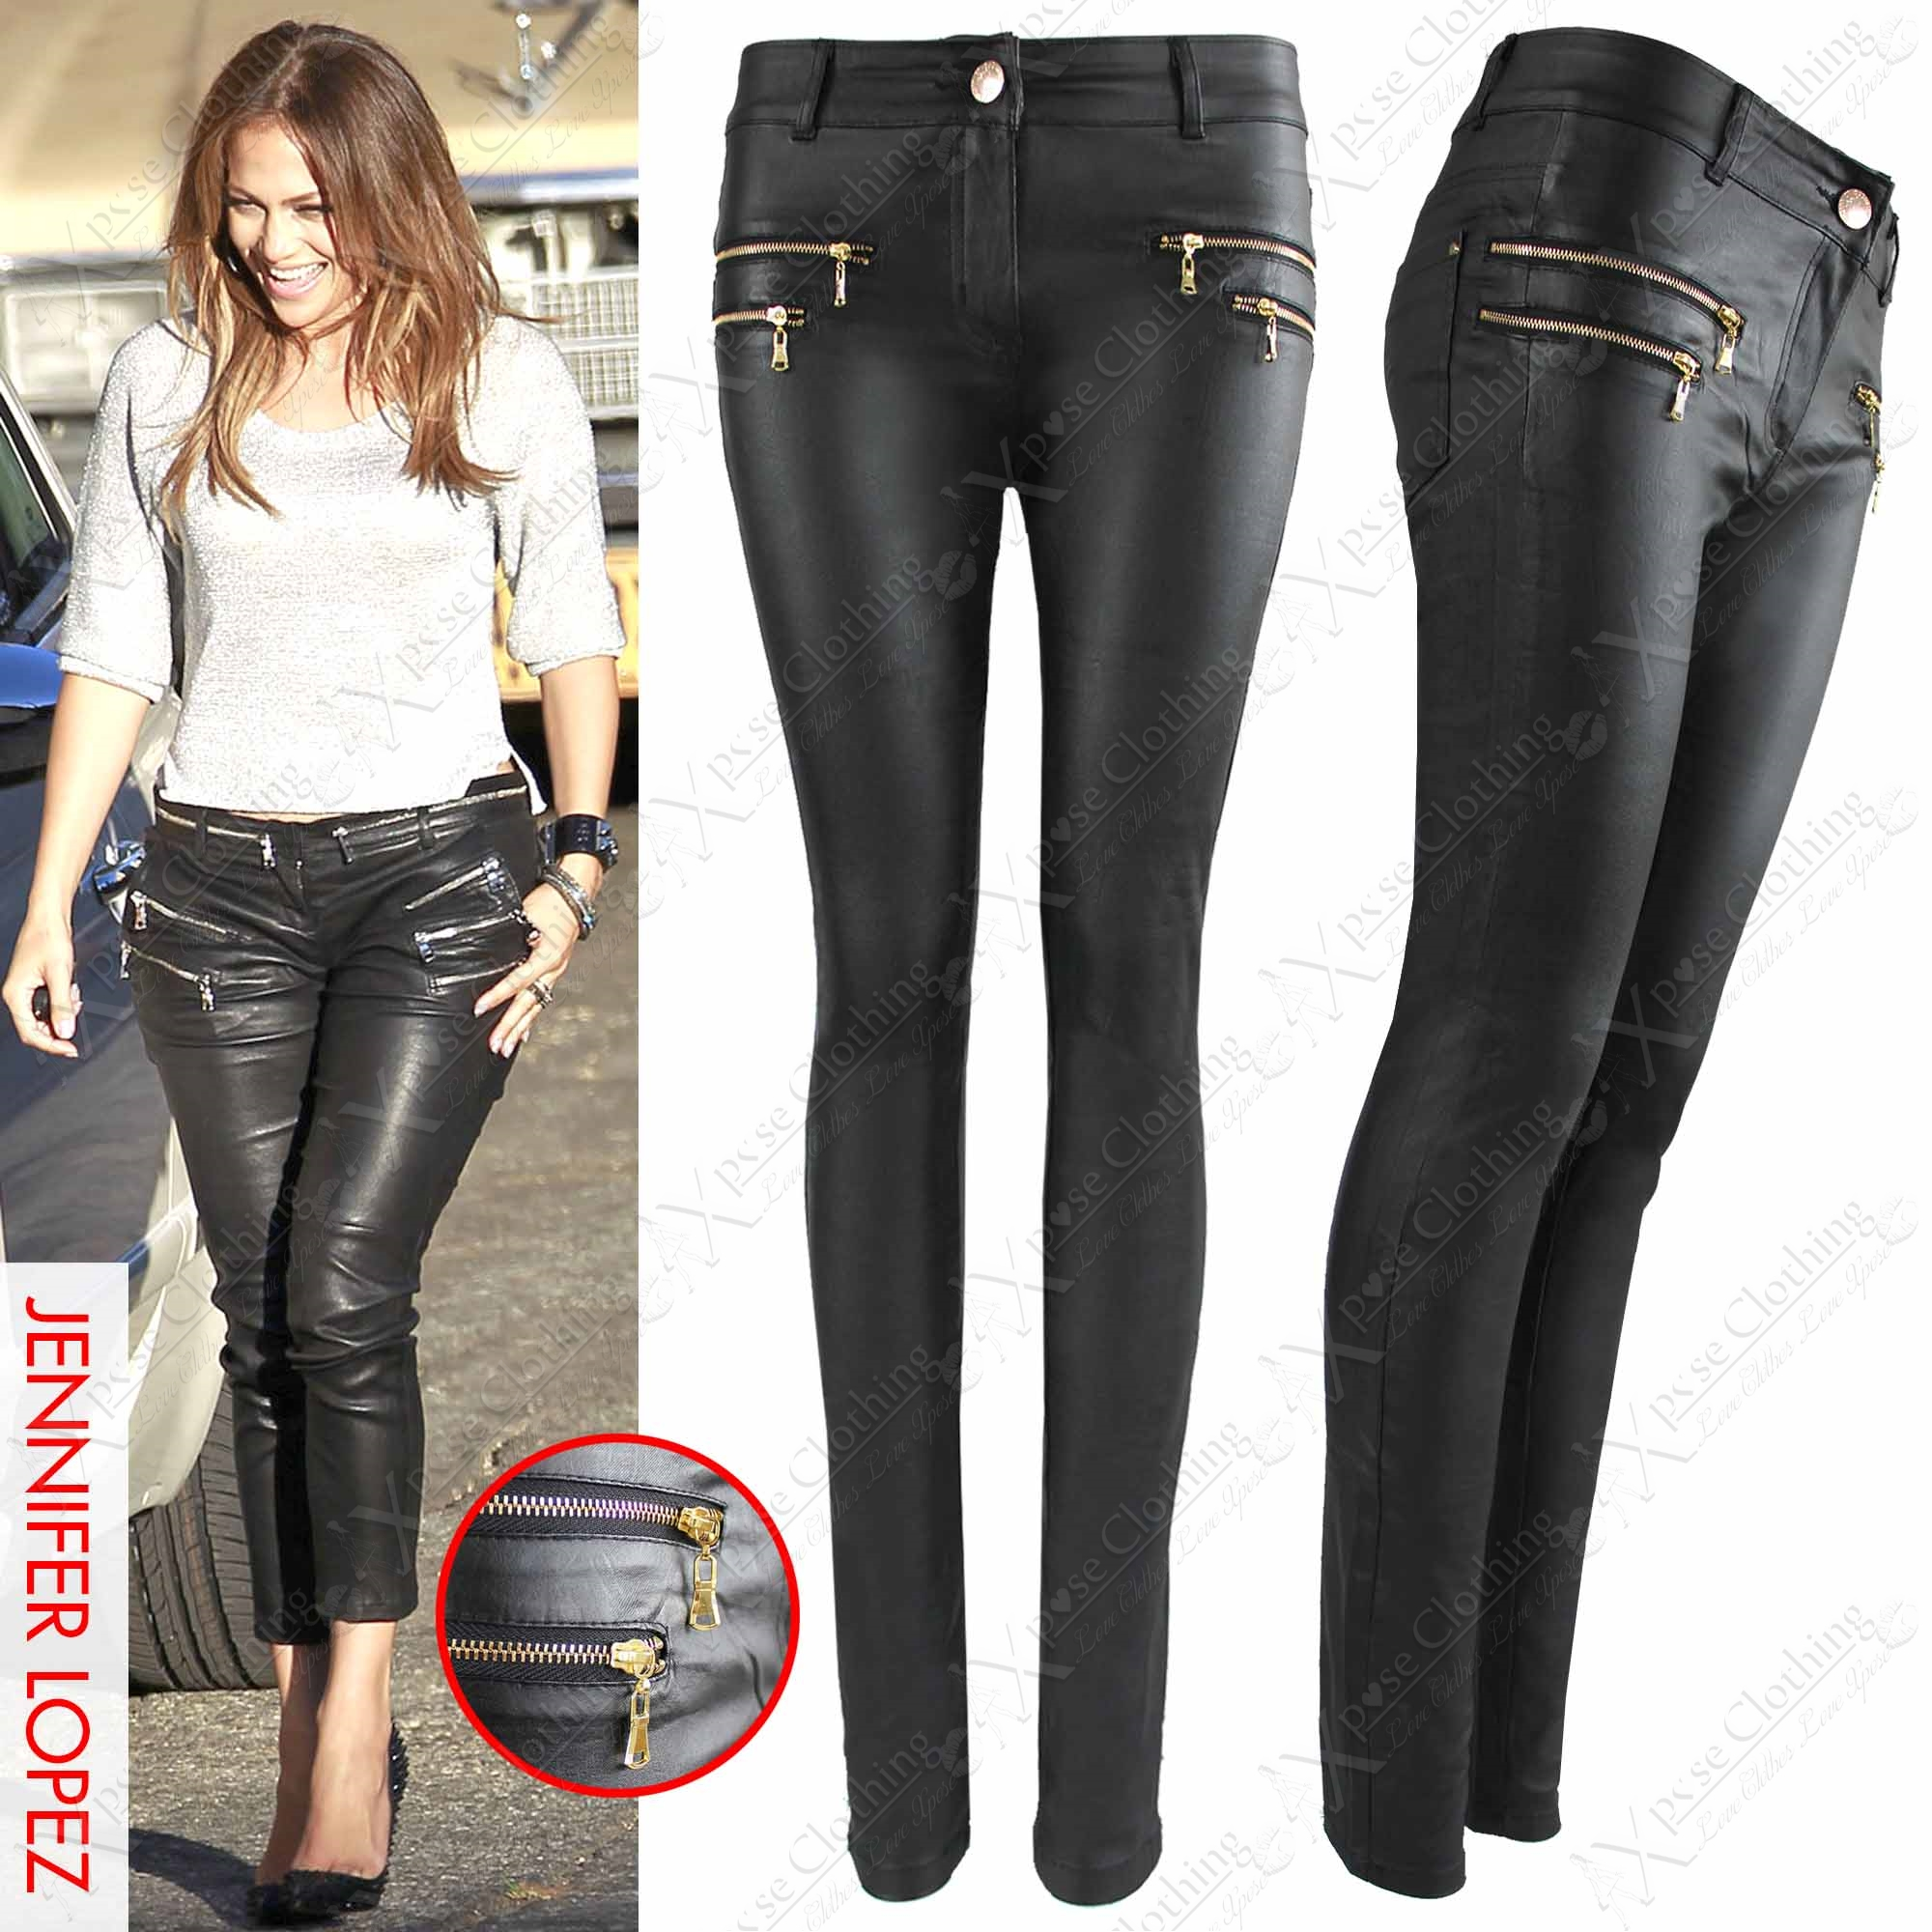 NEW WOMEN LADIES BLACK PU ZIPS JEANS LEATHER WET LOOK SKINNY ...